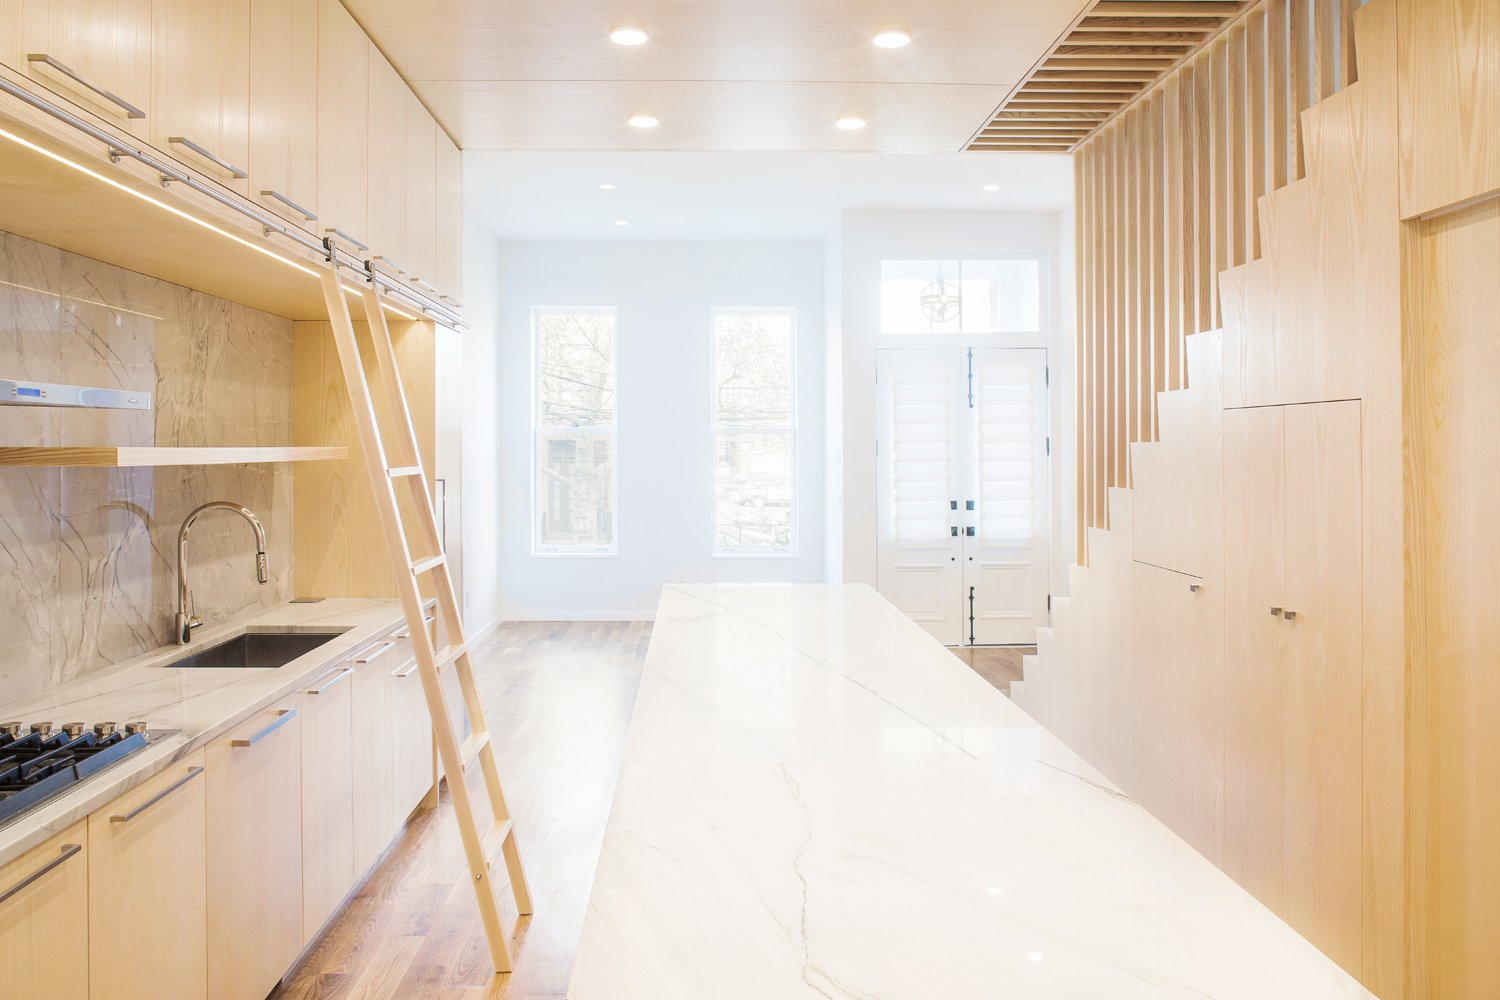 Tagged: Kitchen, Wood Cabinet, Marble Counter, Light Hardwood Floor, Undermount Sink, Marble Backsplashe, and Recessed Lighting.  Wayne Street Row House by Leibal